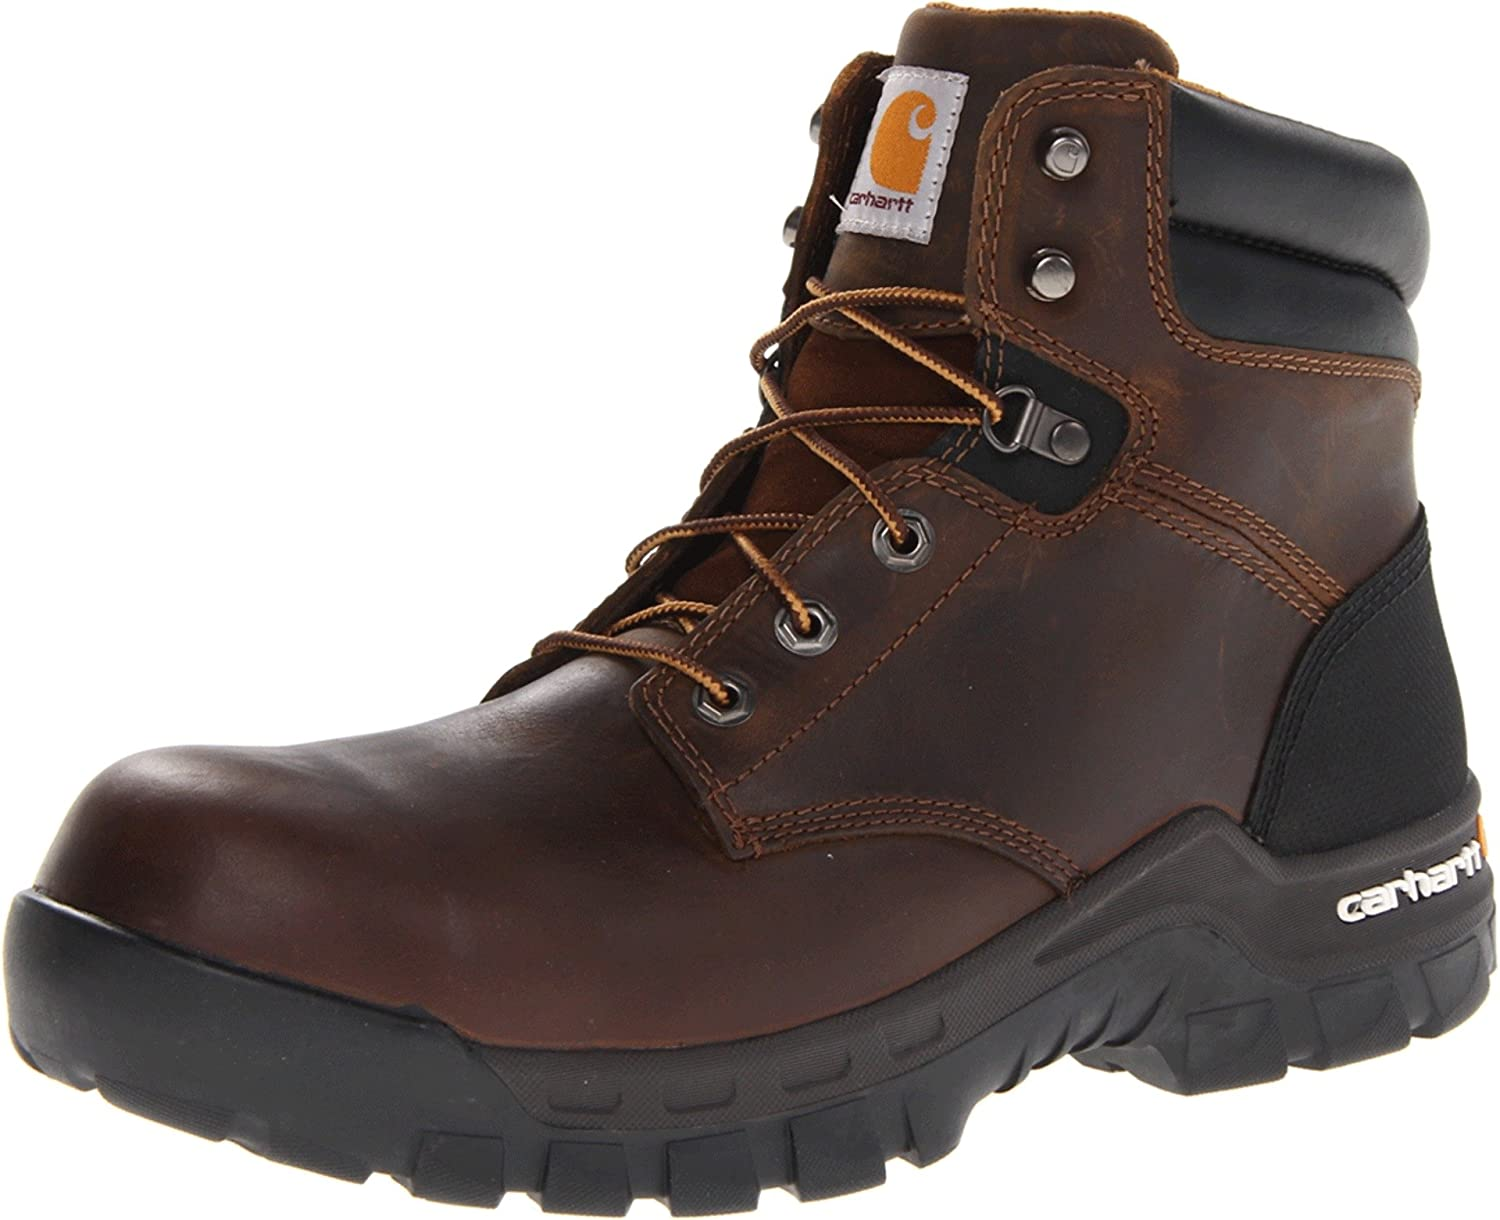 Top 20 Best Work Boots For Men – Step Into Durability That Lasts images